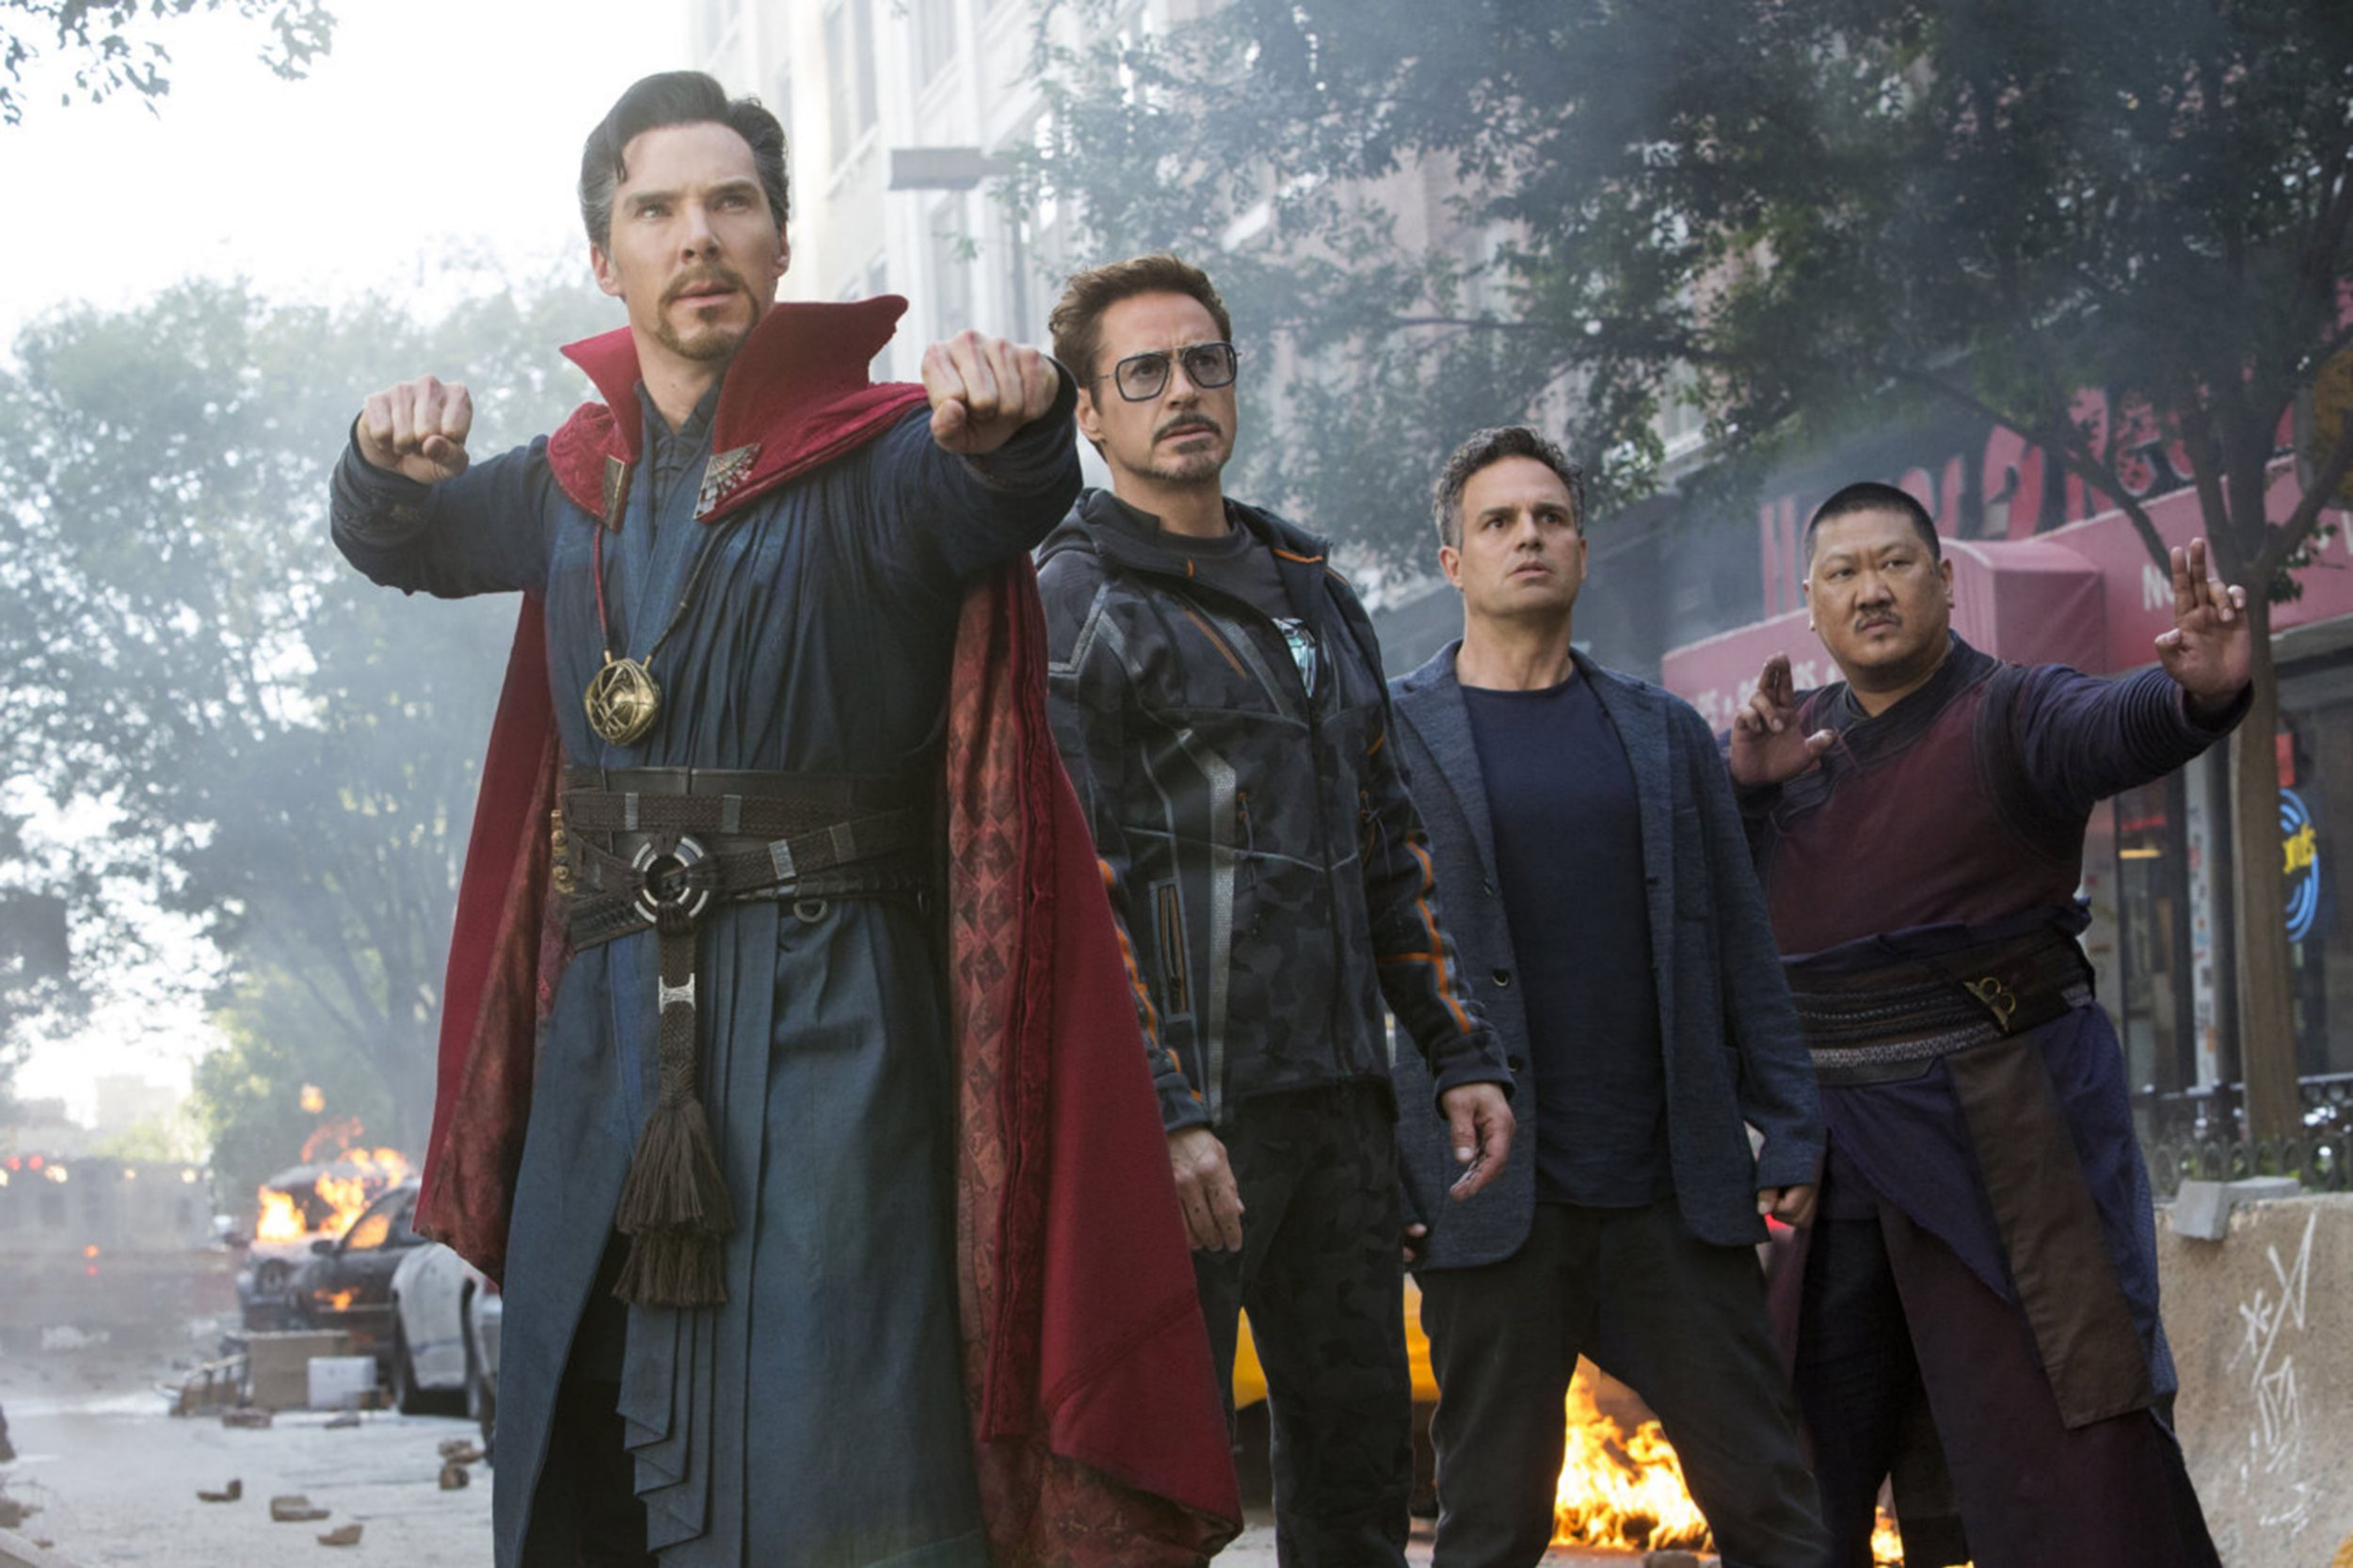 Robert Downey Jr teases Avengers: Endgame is Marvel's 'finest hour' in new featurette